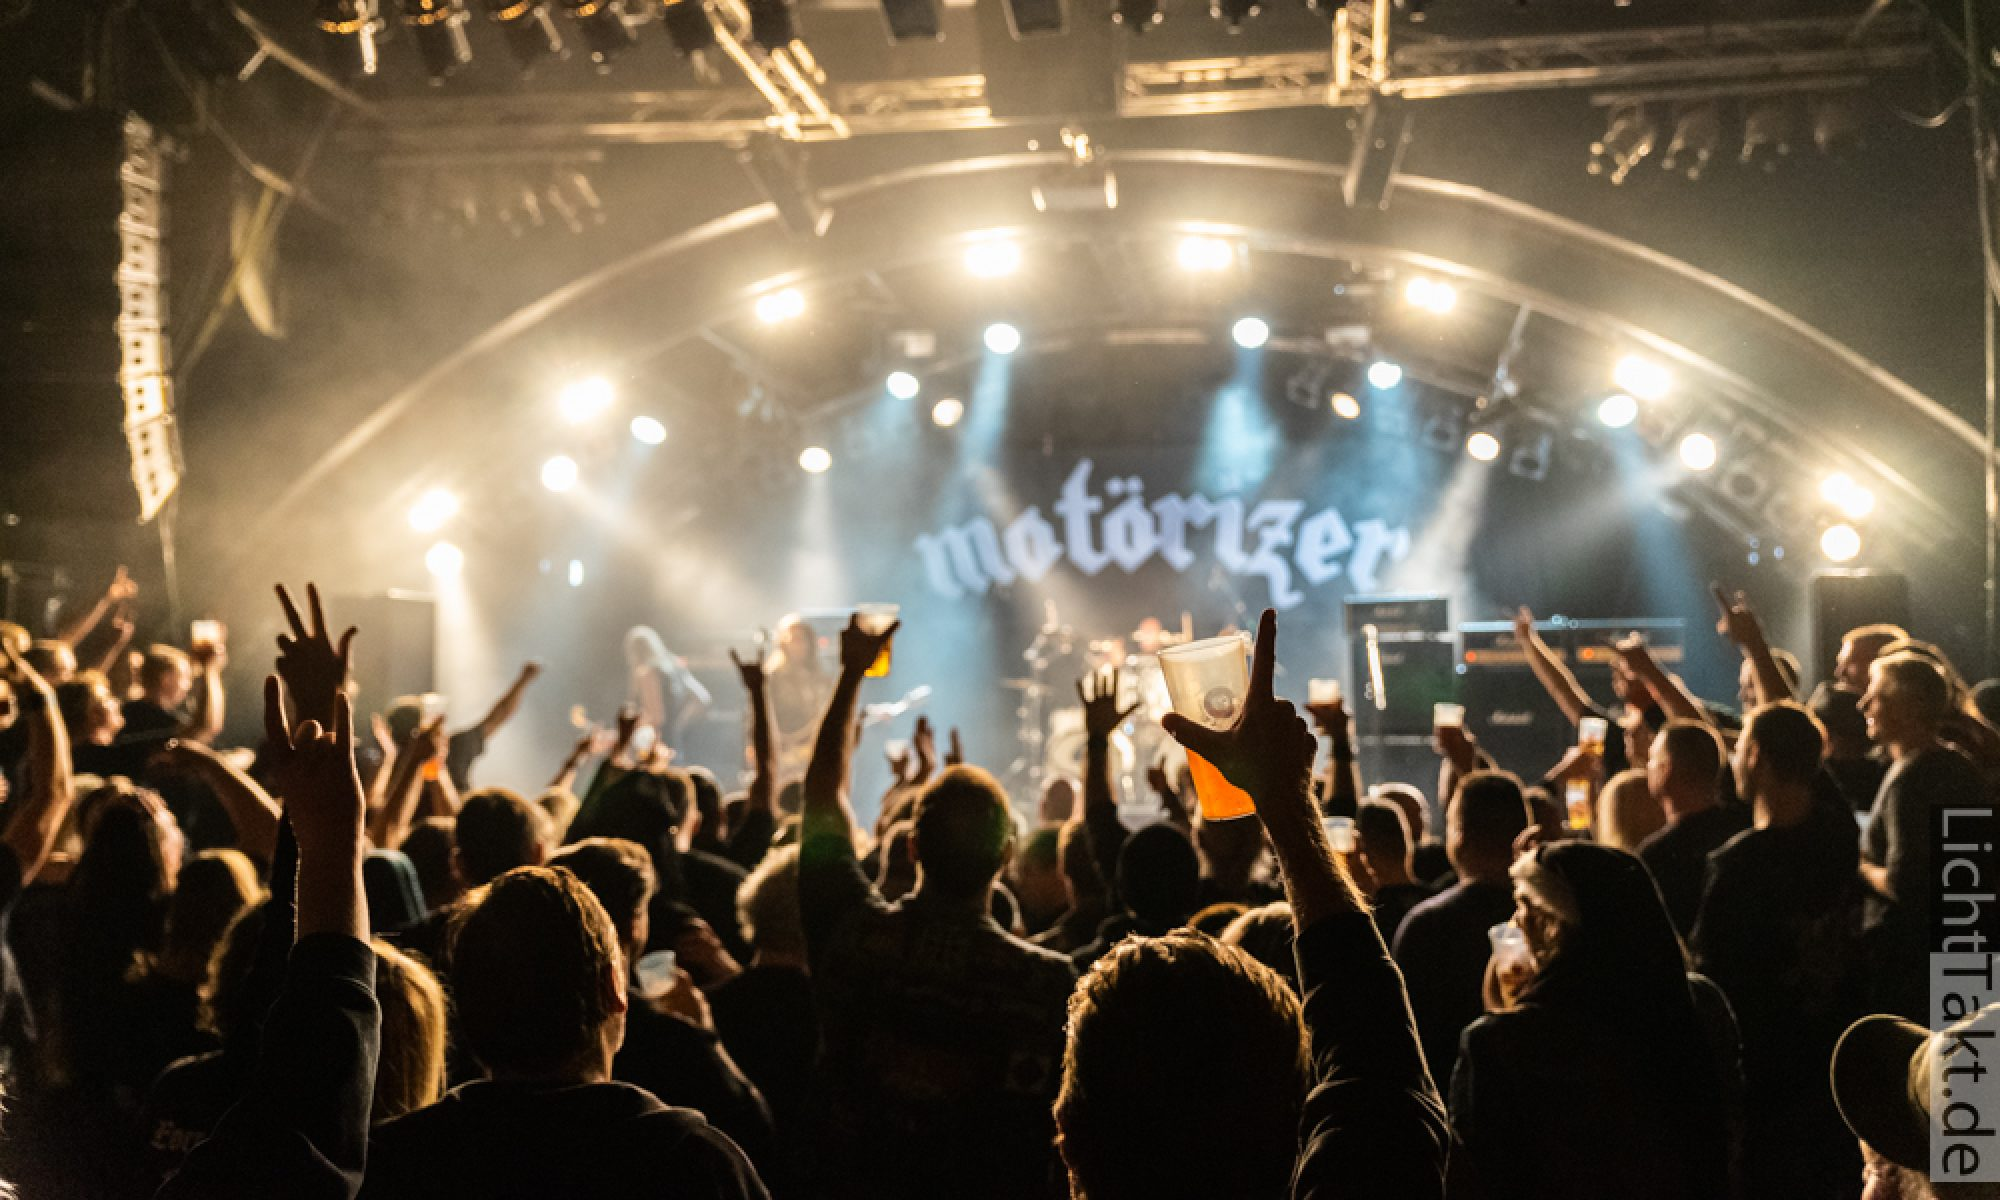 Motörizer - Motörhead Tribute Band